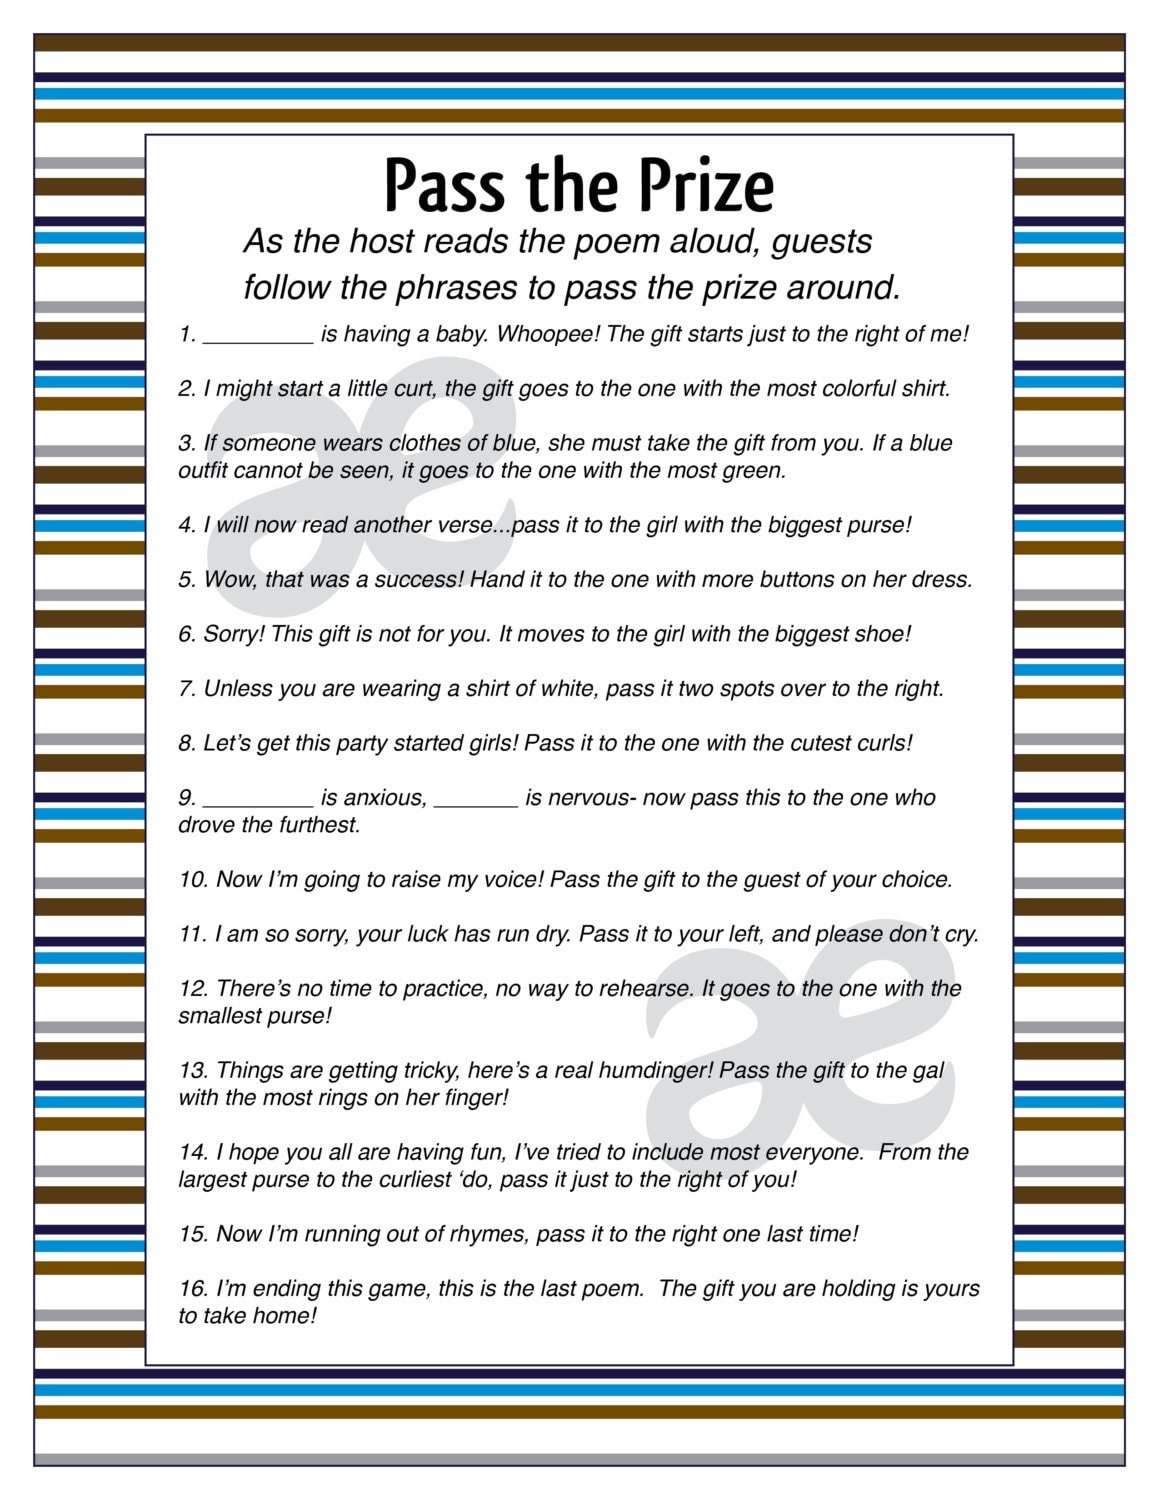 Satisfactory image regarding baby shower pass the prize rhyme printable